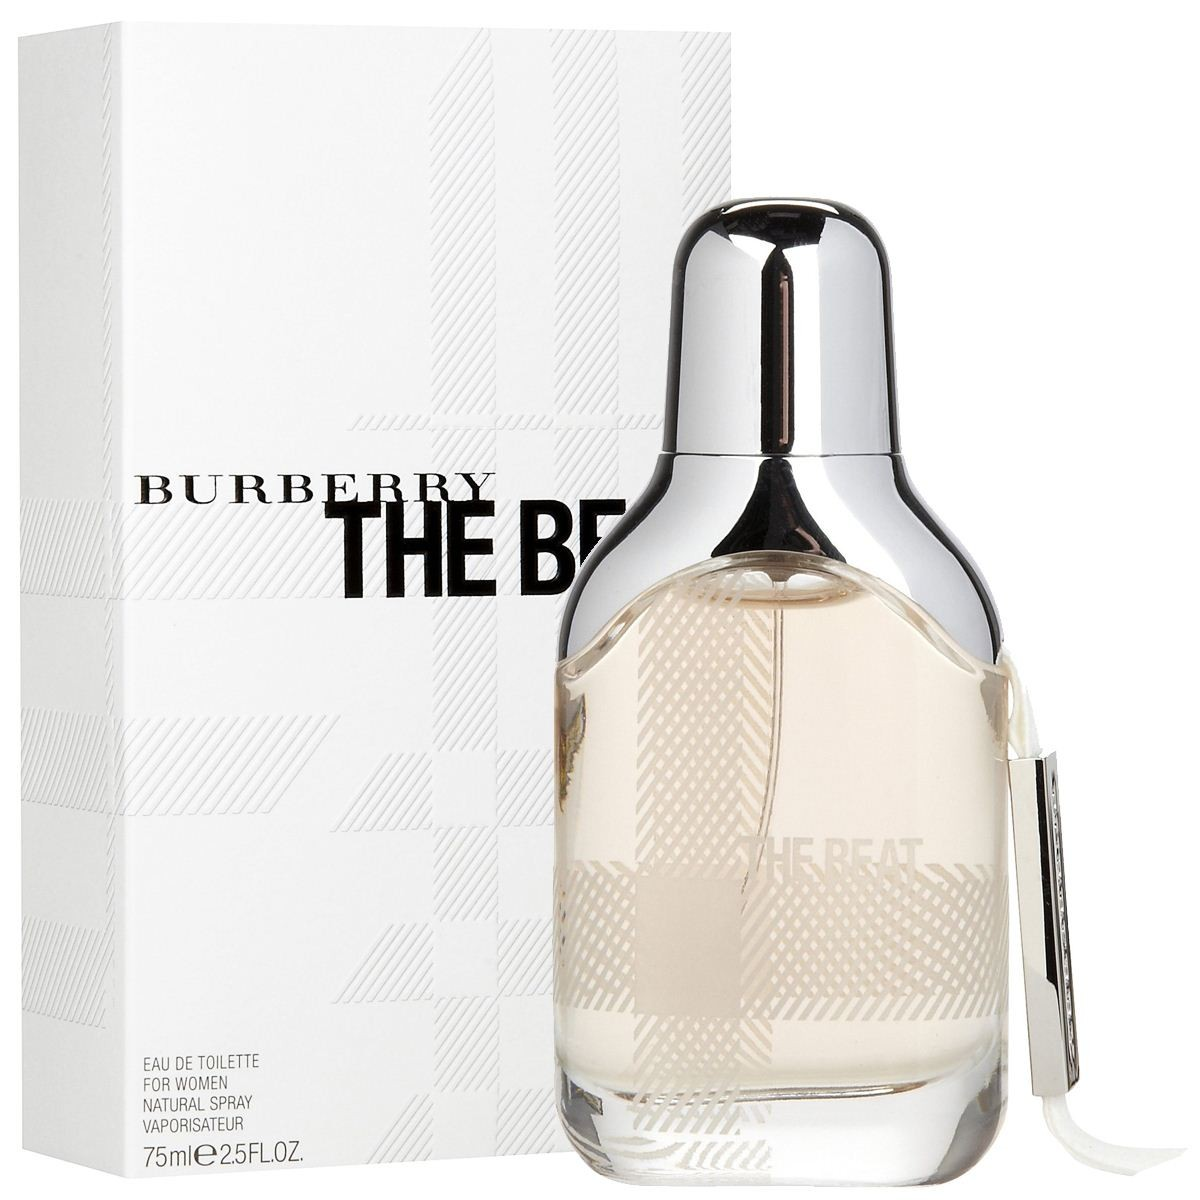 d062f59fd3 Burberry the beat EDT Eau de toilette SP 75 ml BURBERRY THE BEAT EAU DE  TOILETTE